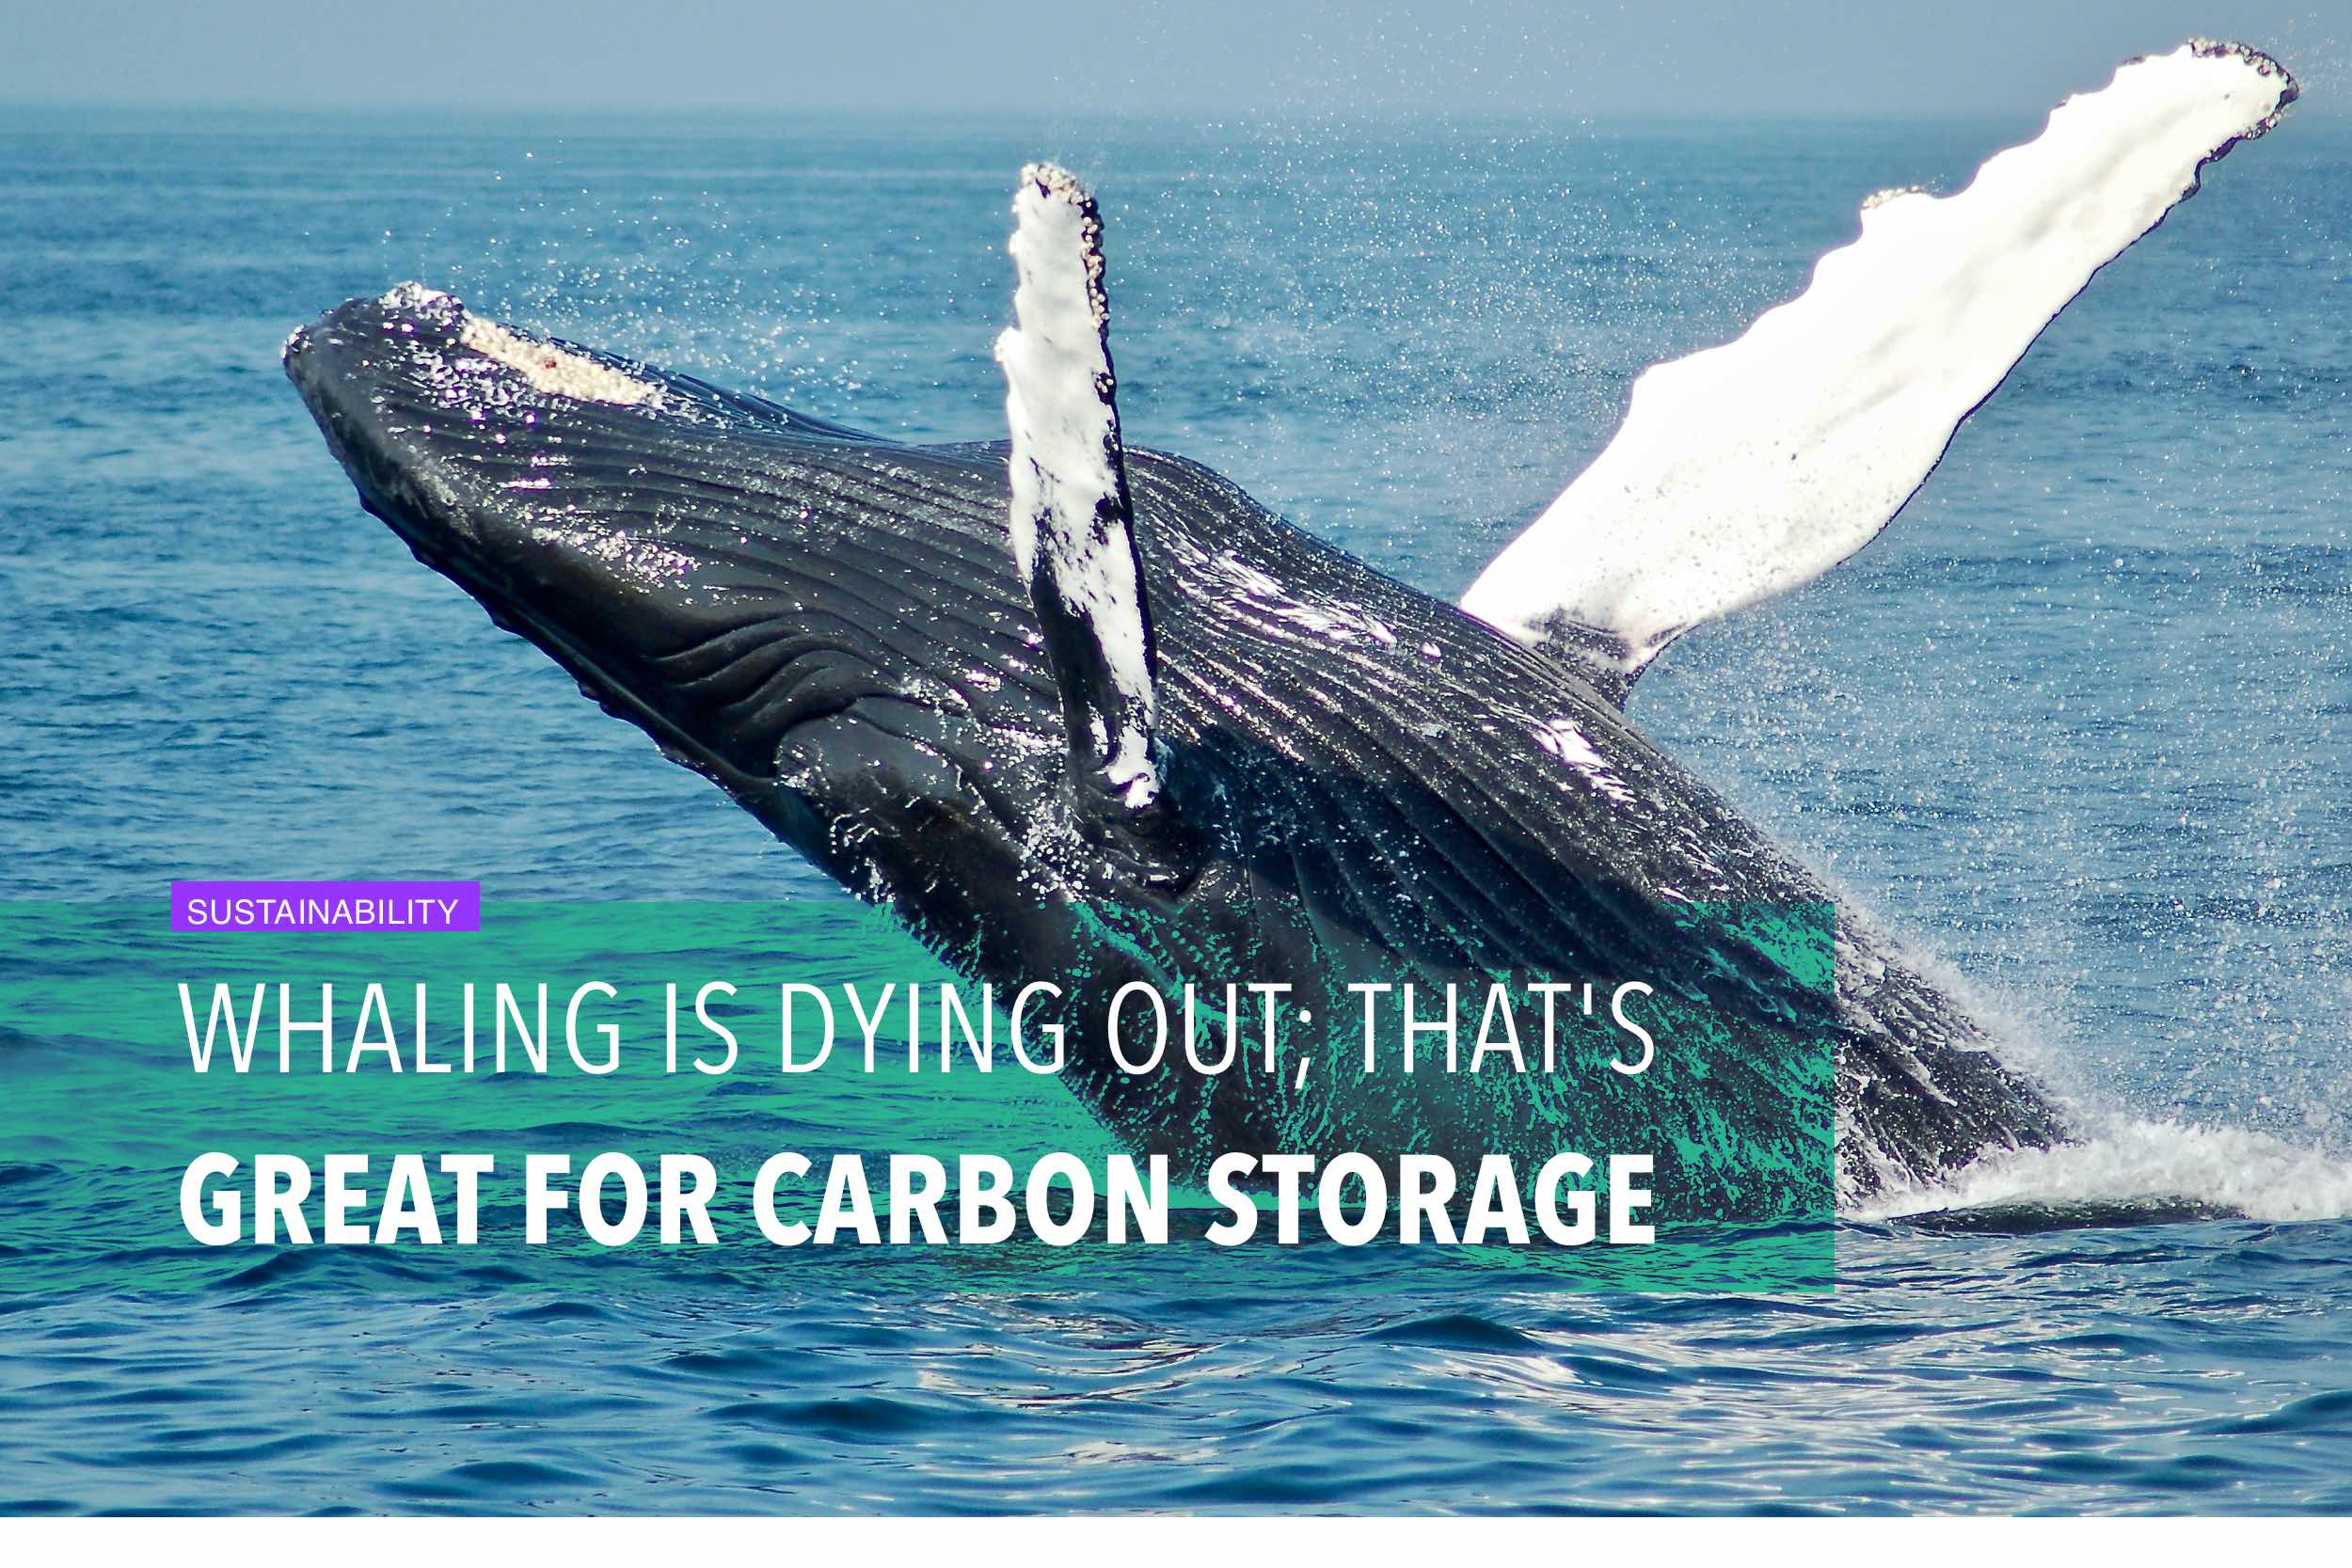 Whaling is dying out; that's great for carbon storage